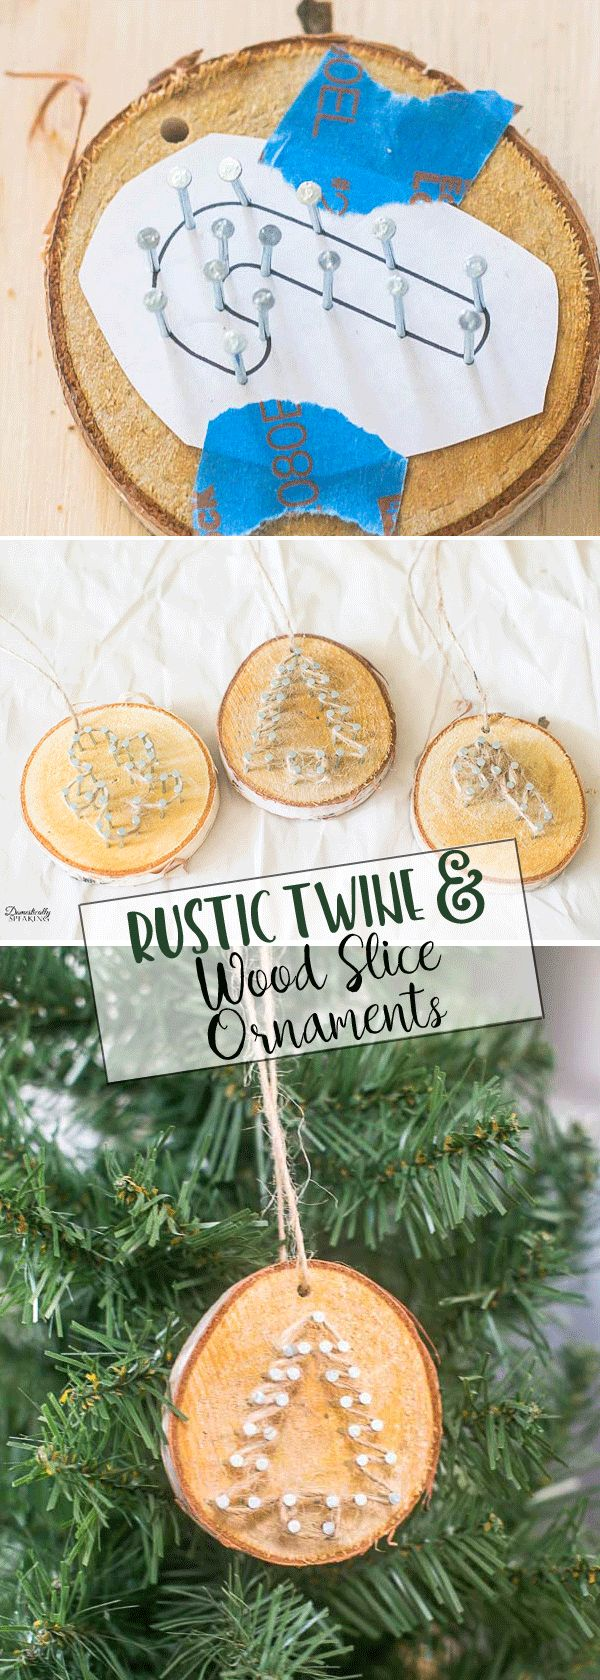 Rustic Twine and Wood Slice Christmas Ornament | DIY Homemade Ornaments | Easy Christmas Craft #christmas via @domesticallyspeaking